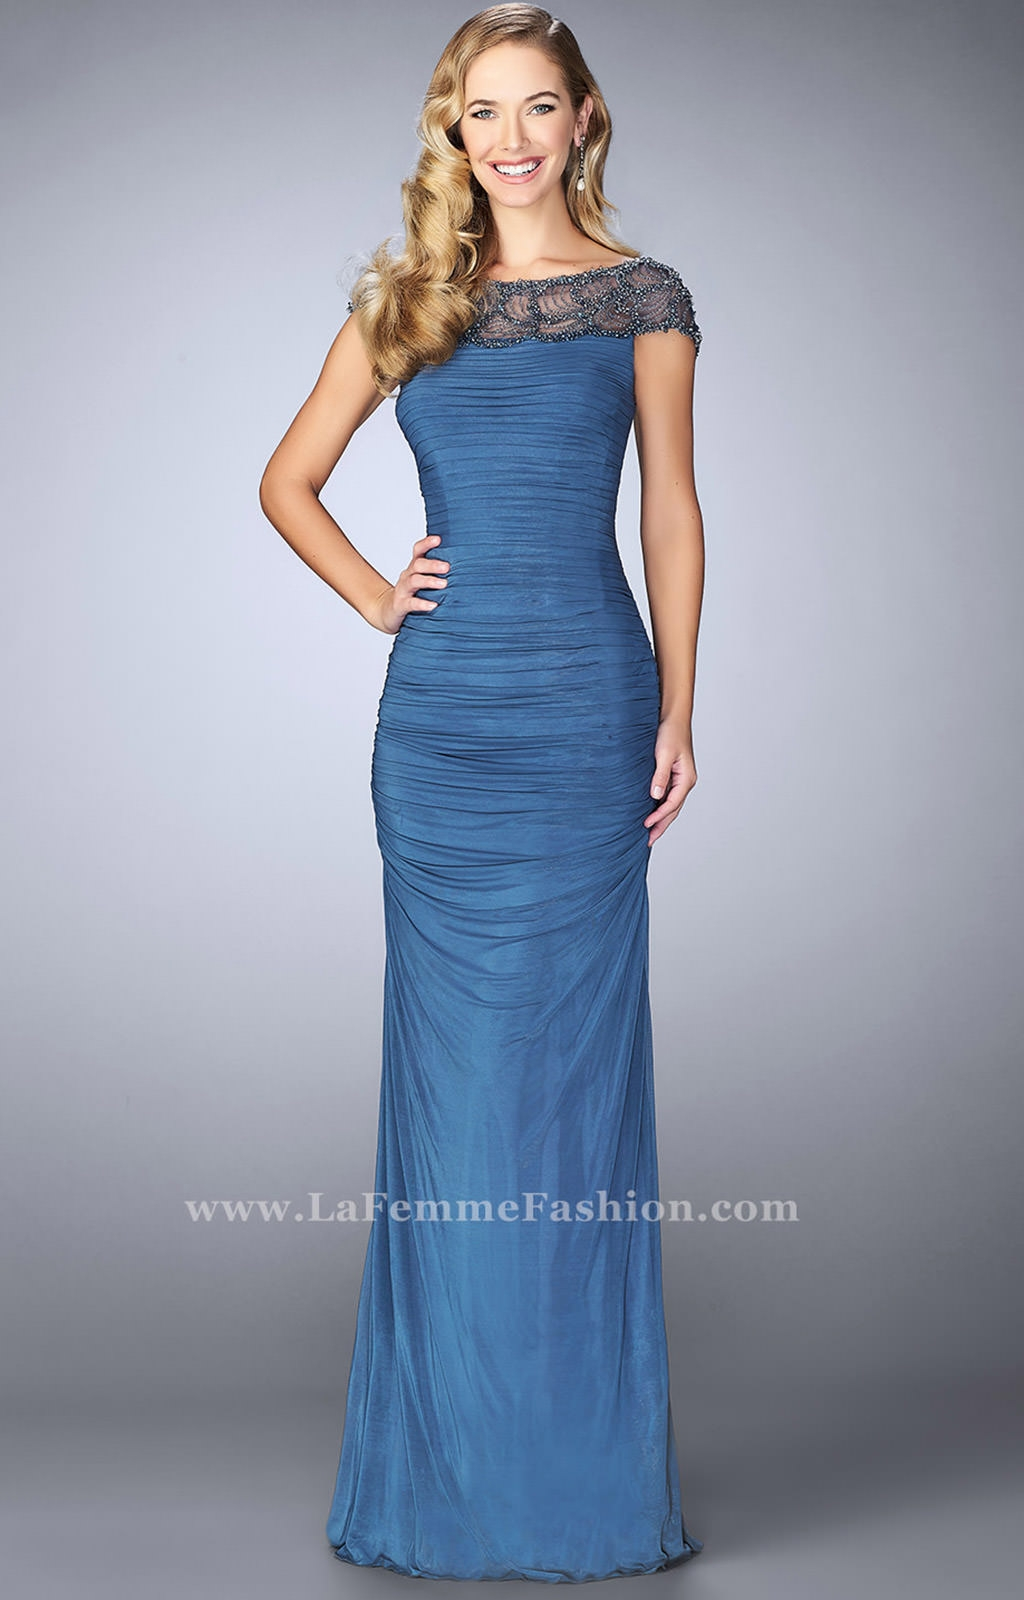 La Femme 23215 - Boat Neck Cap Sleeve Fitted Dress Prom Dress